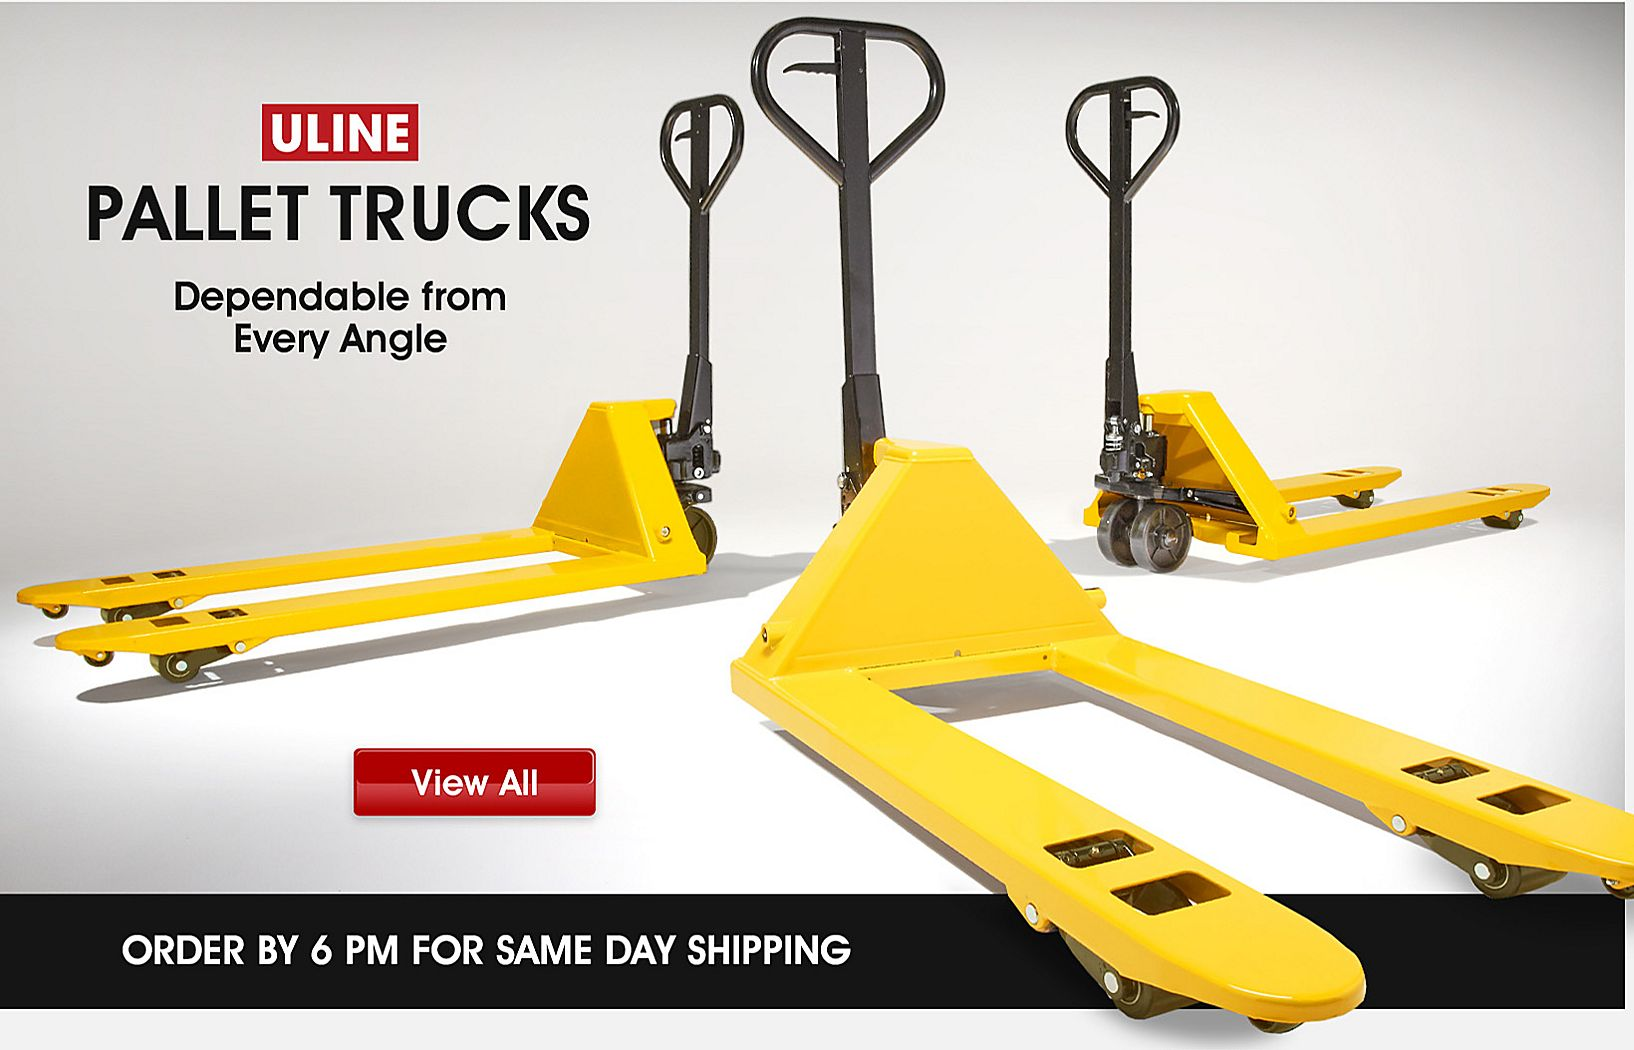 Uline Pallet Trucks, Dependable from Every Angle, View All, Order By 6 PM for Same Day Shipping